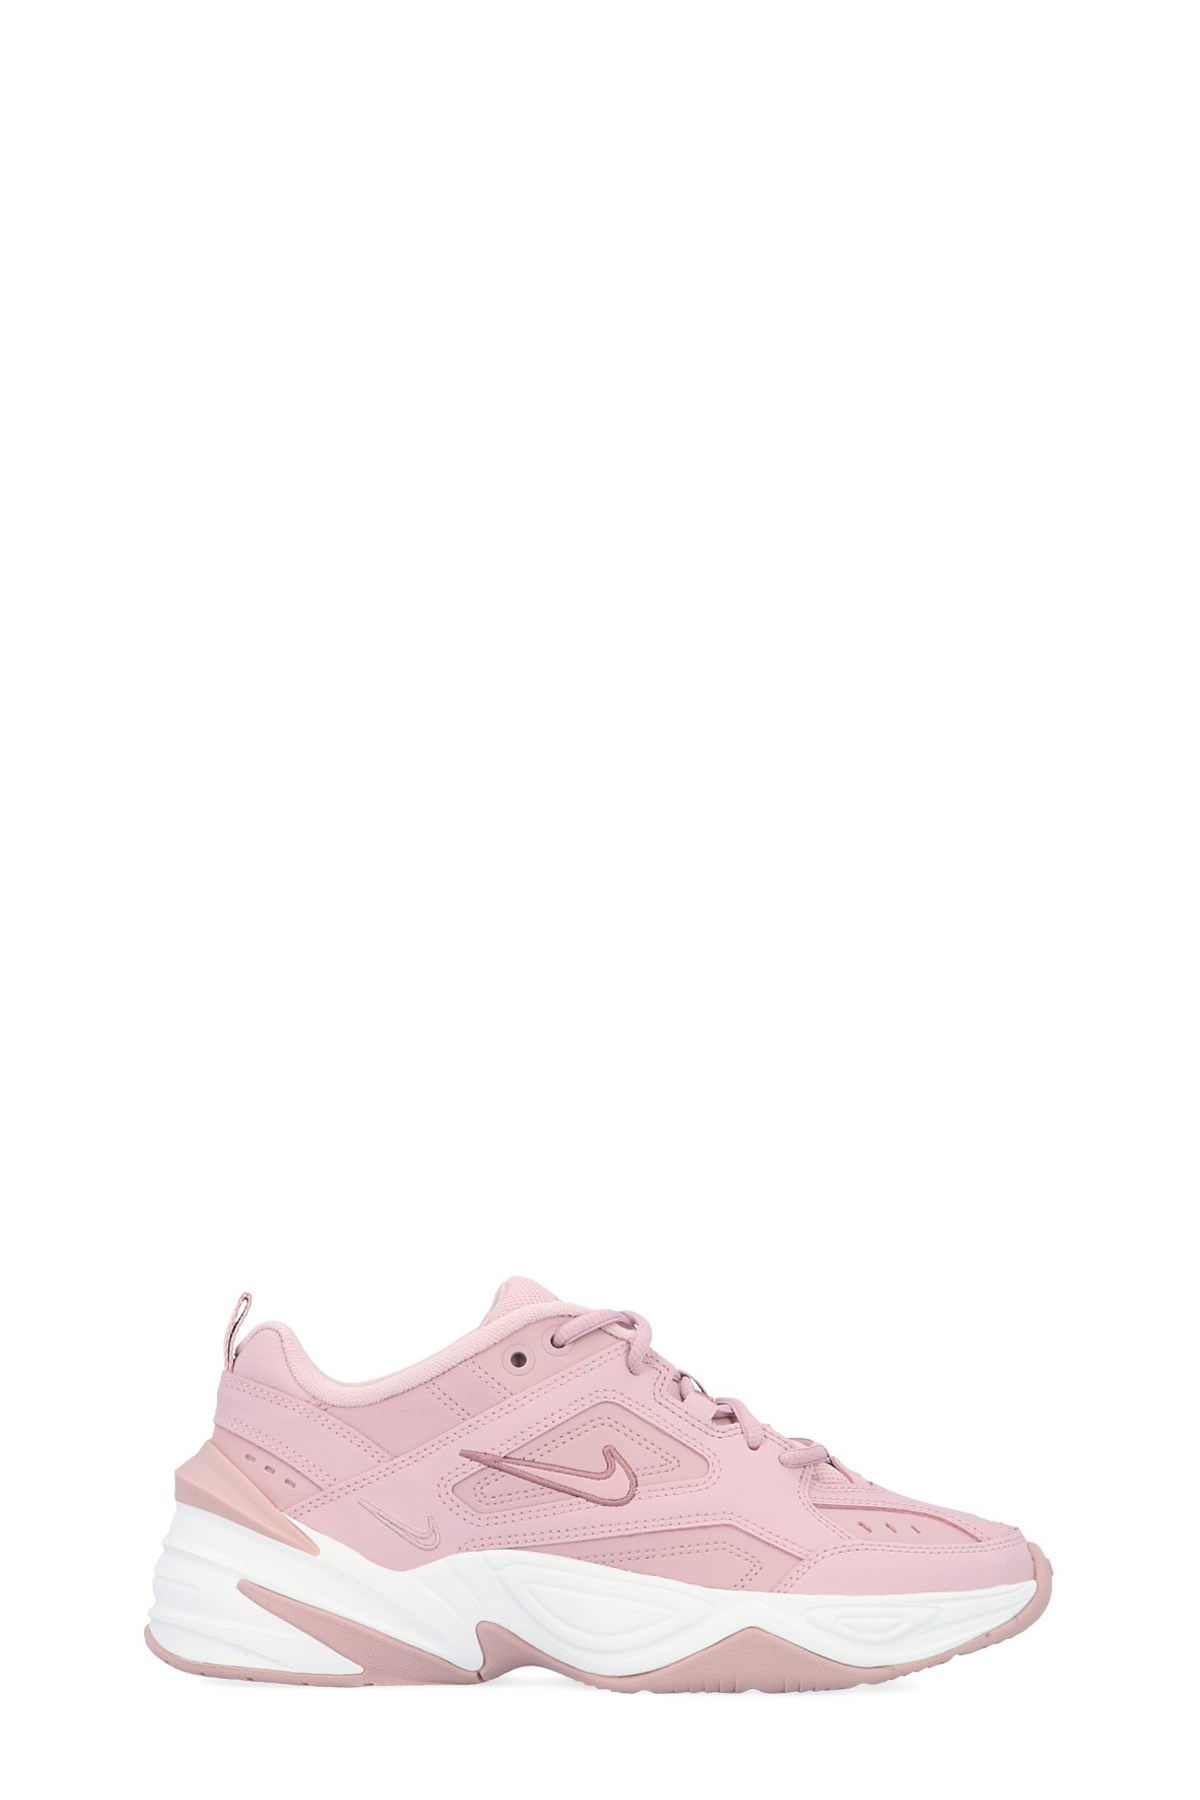 outlet store 1e039 9830f nike W nikw m2k tekno sneakers available on julian-fashion.c